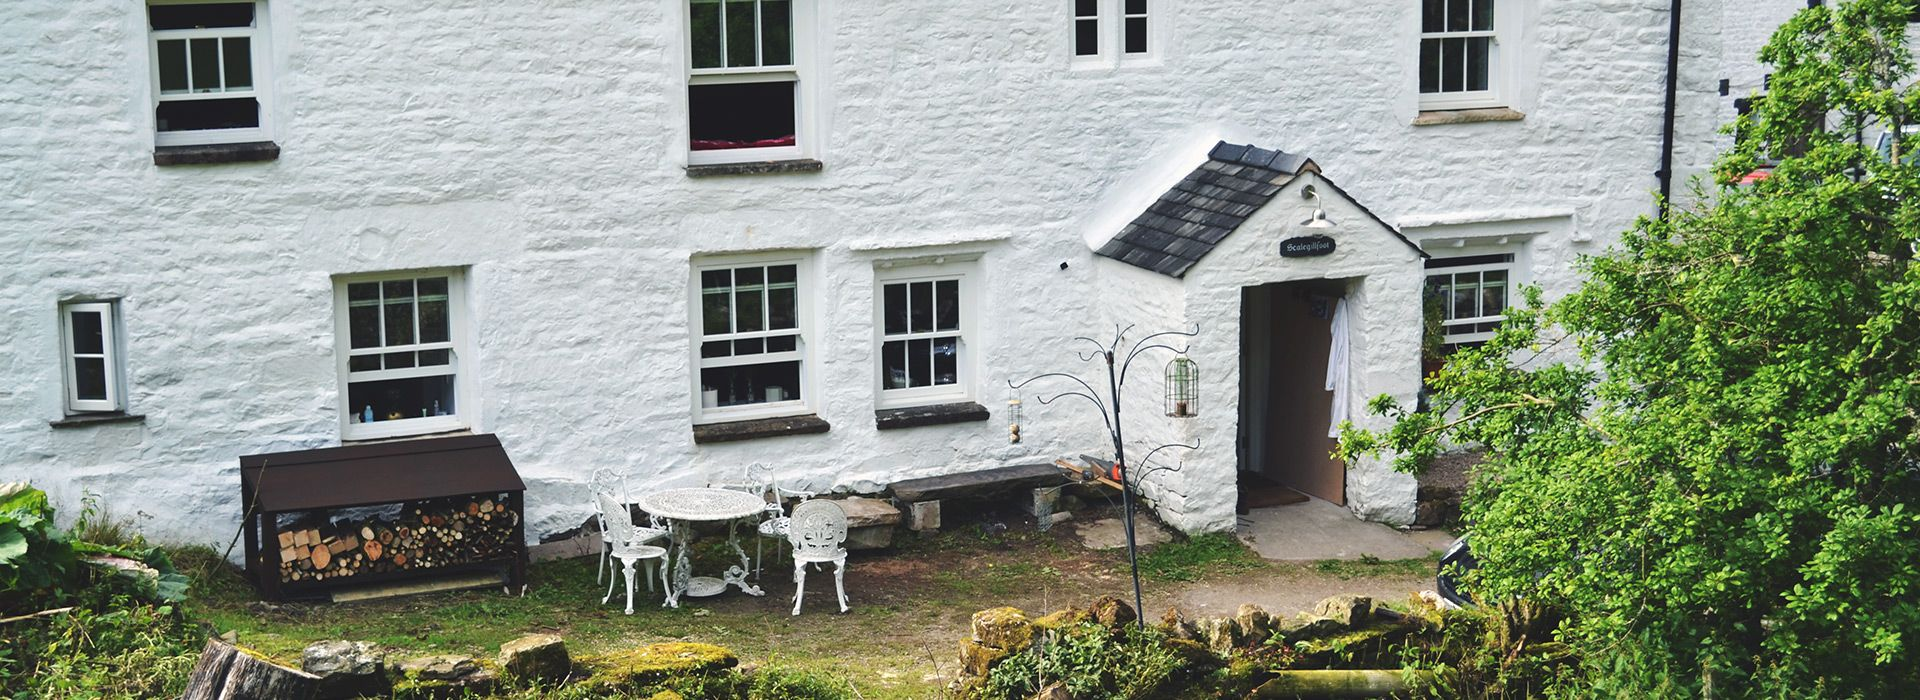 Self Catering Holiday Cottage in Cowgill, Yorkshire Dales